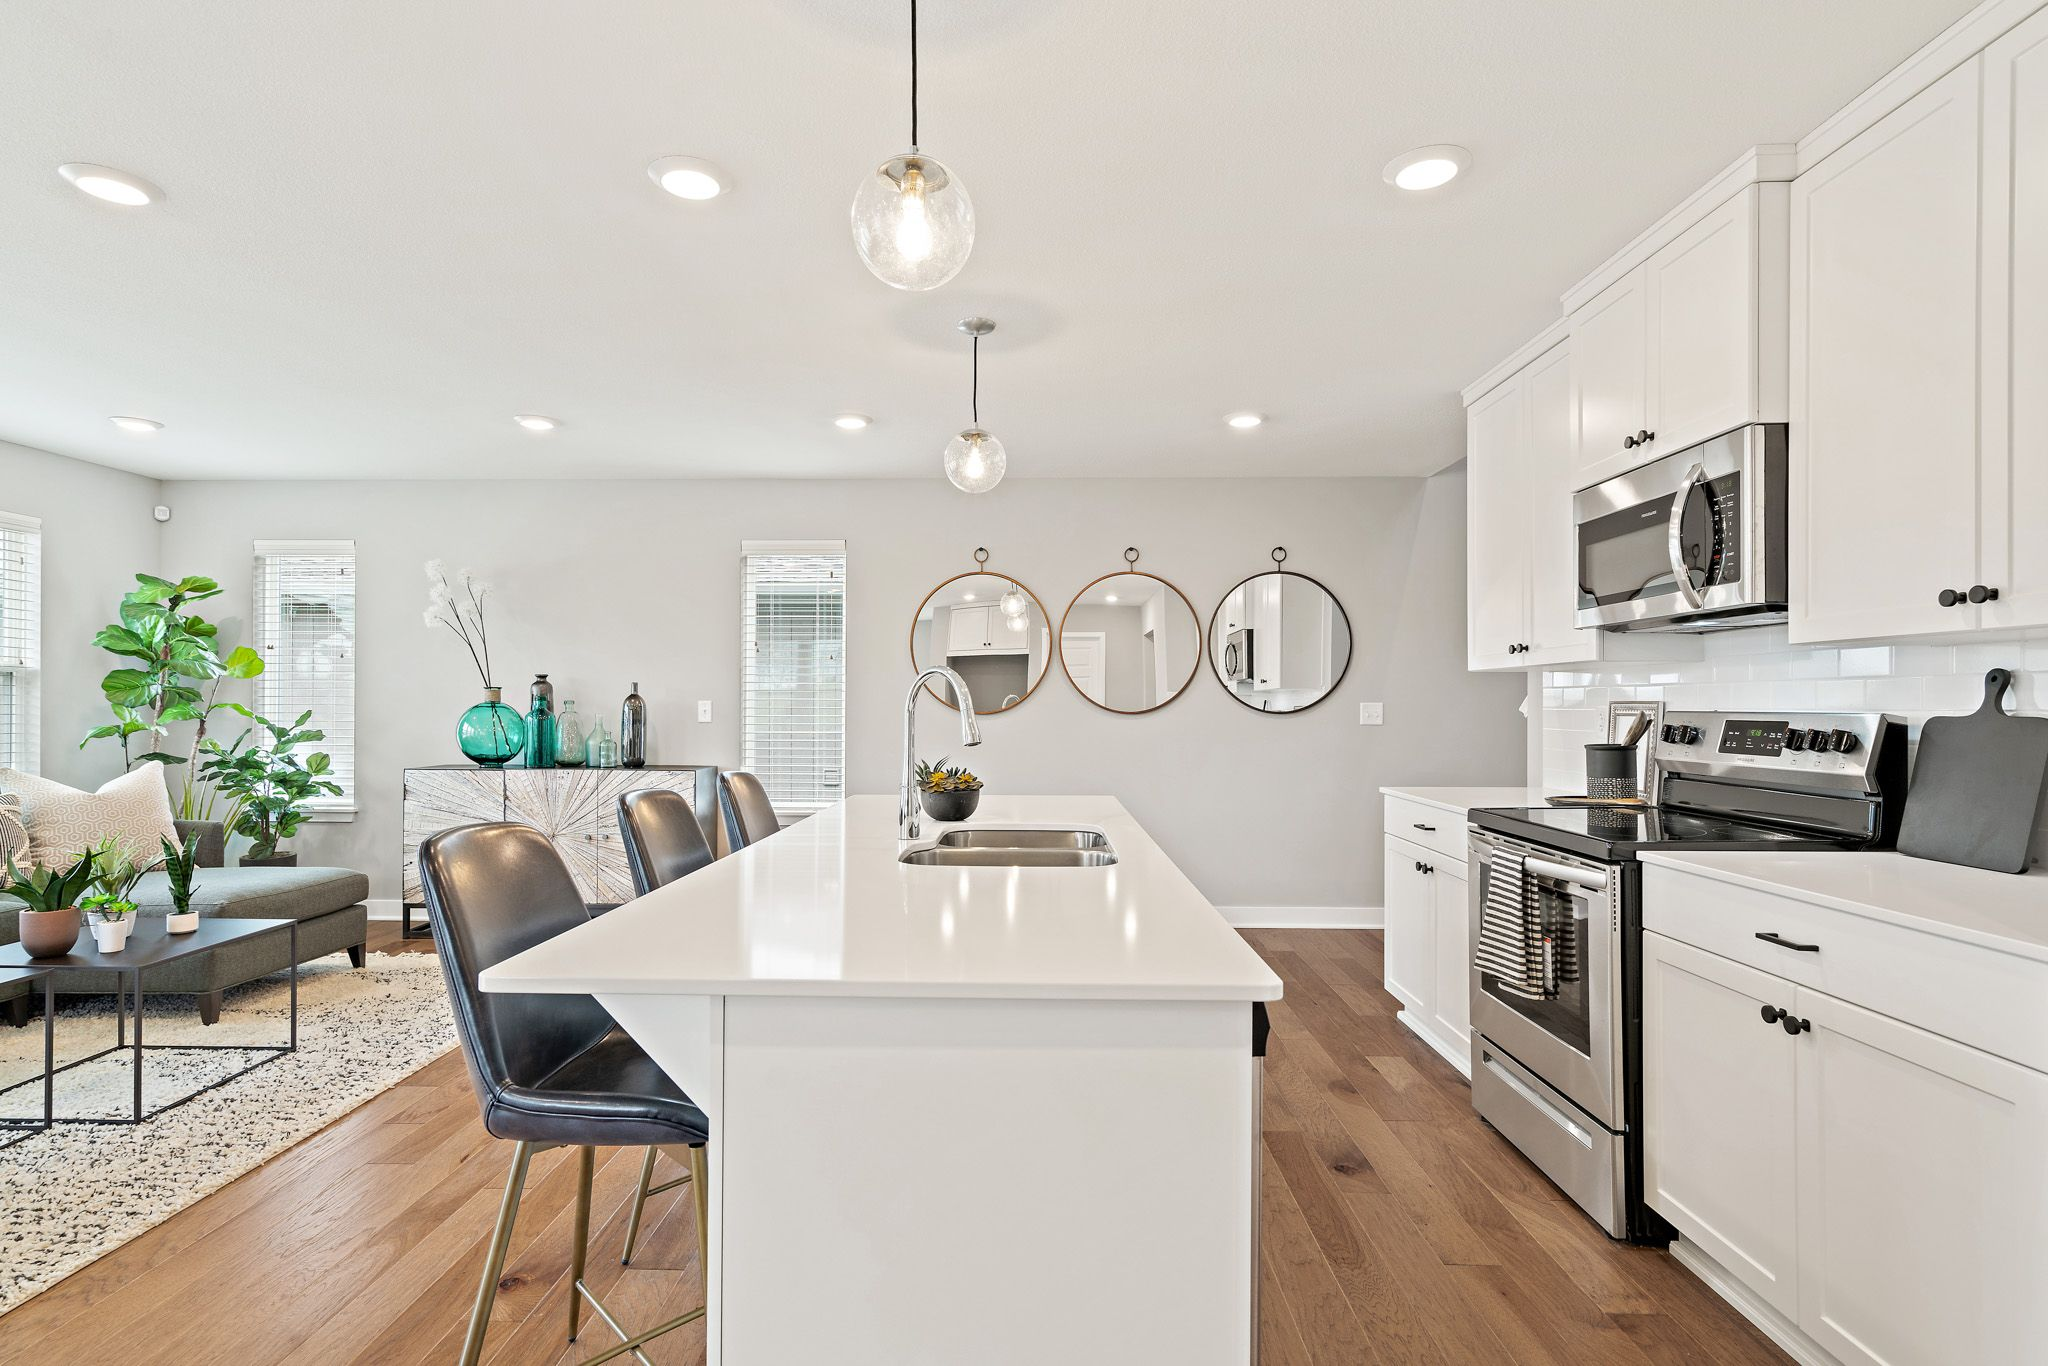 Kitchen featured in the honeydew By clover & hive in Kansas City, MO